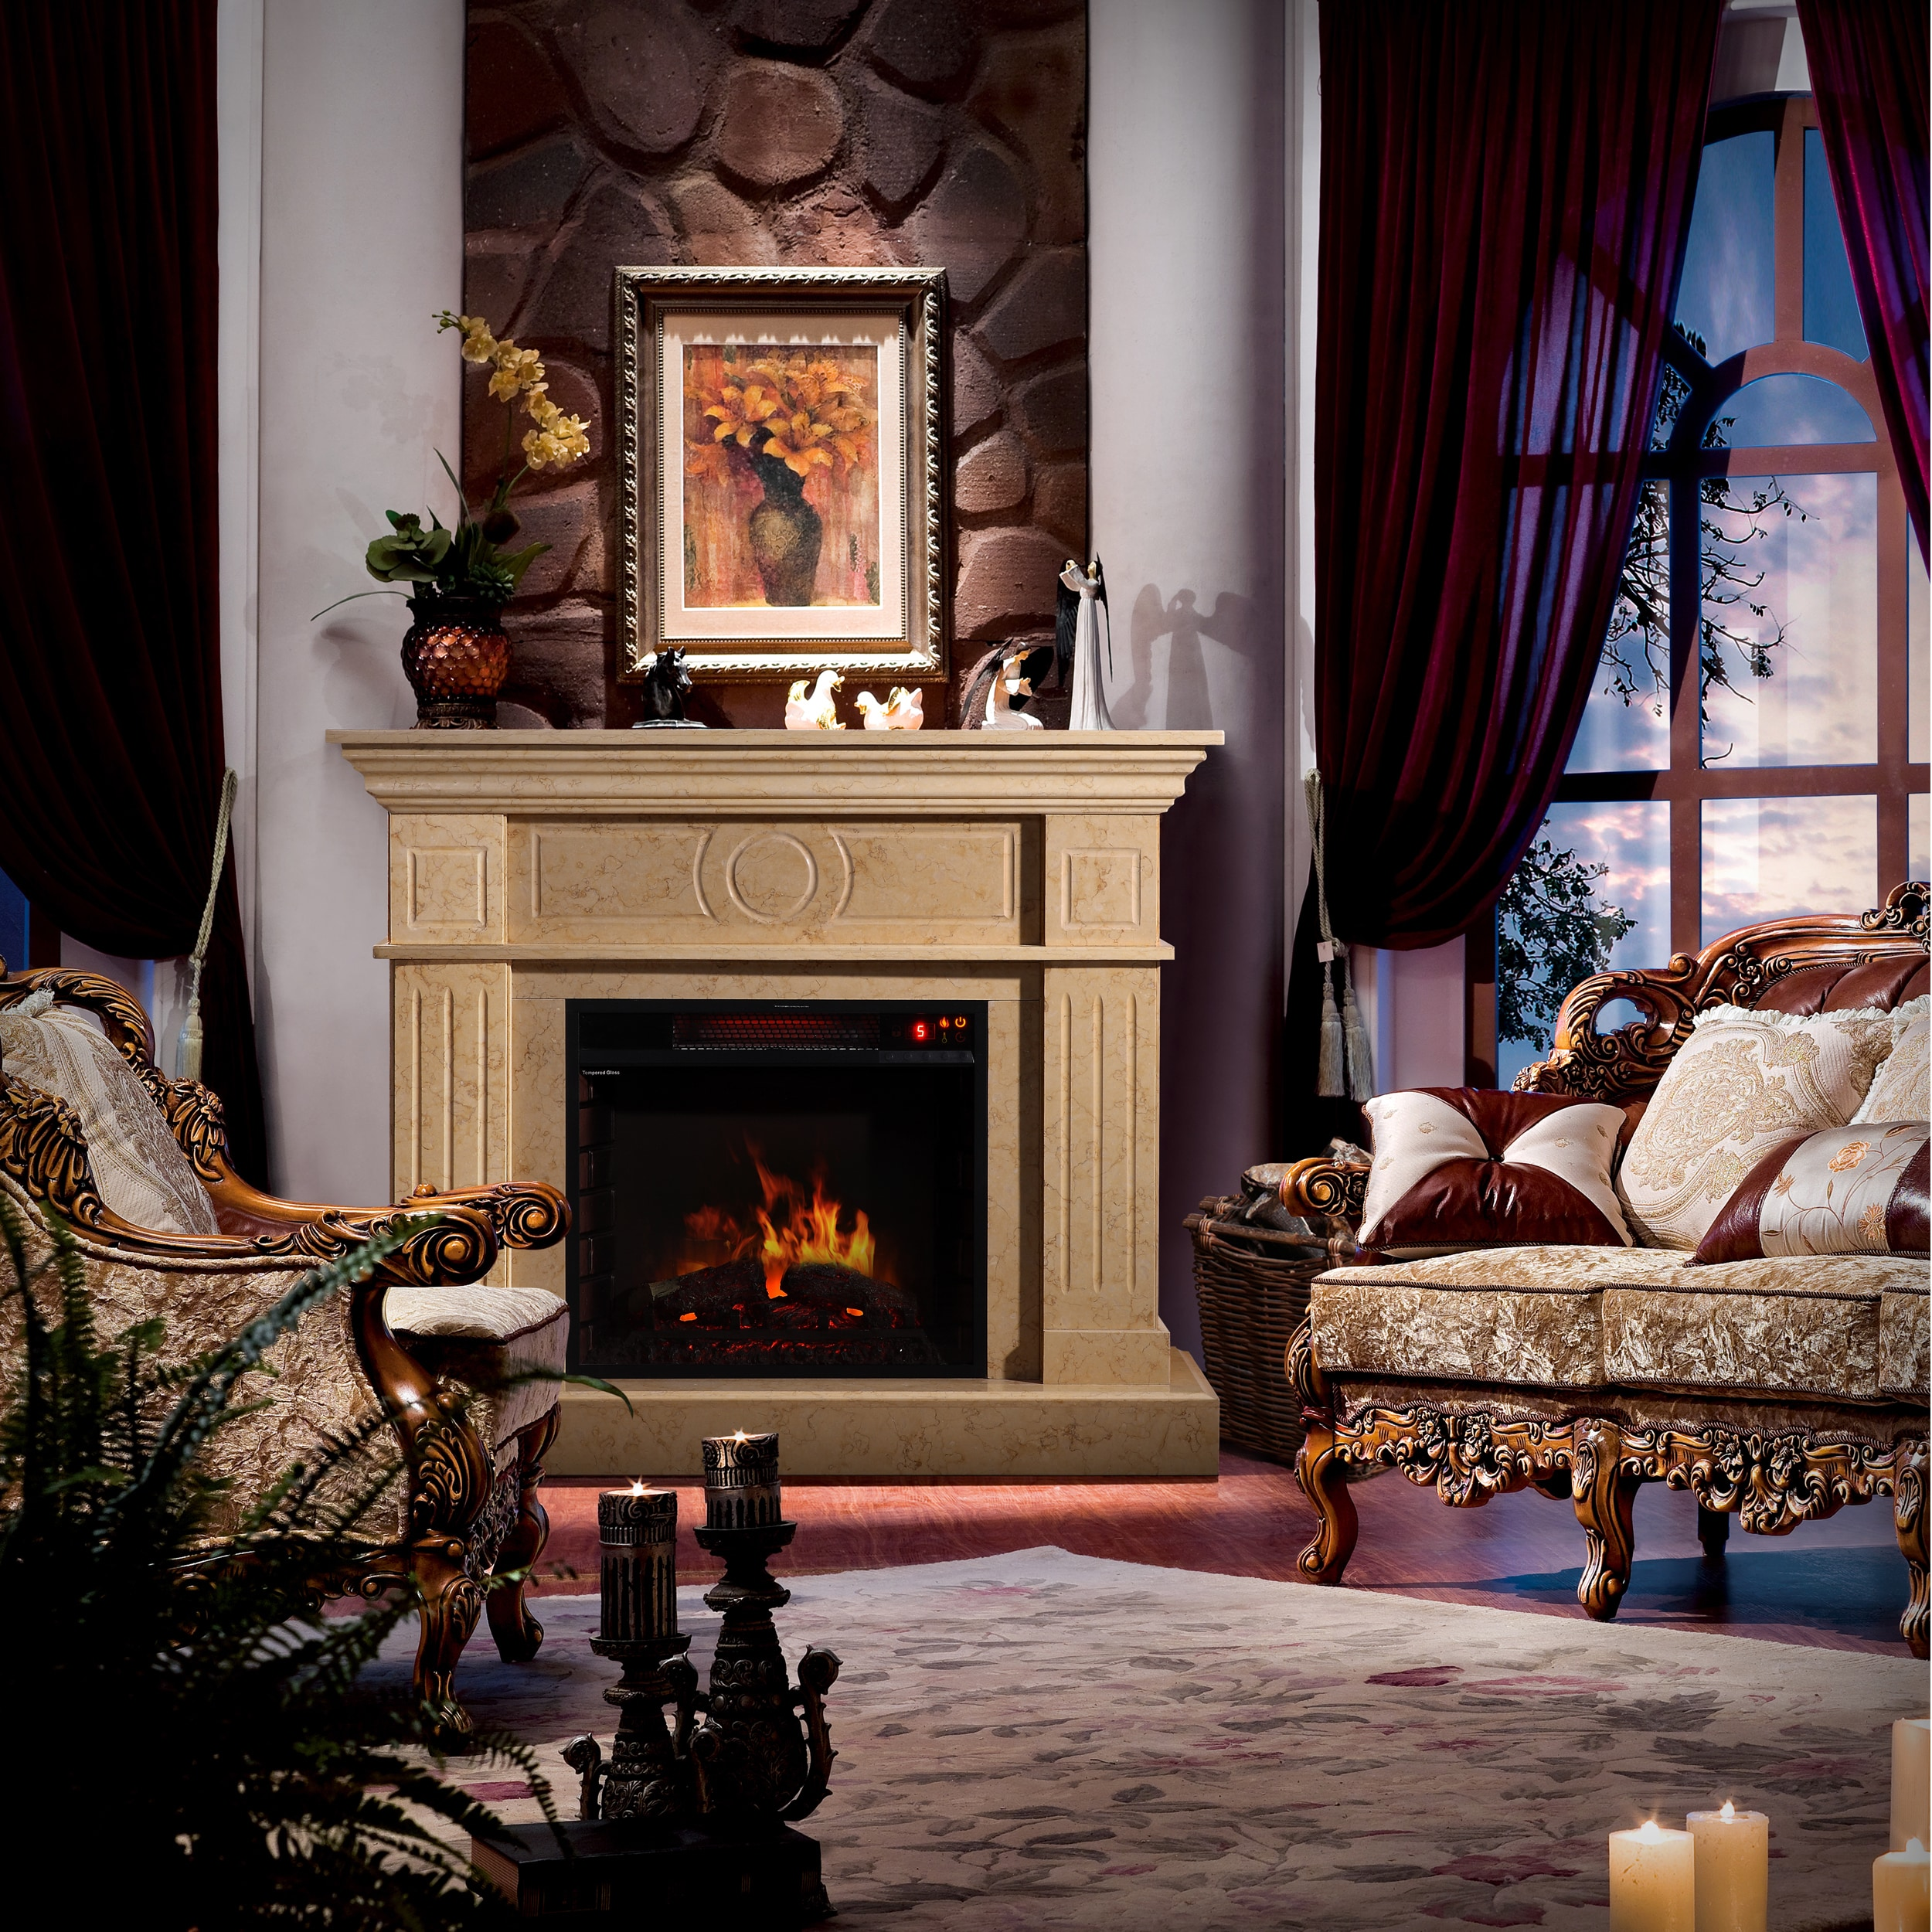 Corvus Electric Flame Fireplace with Multi-function Remote Control - Free  Shipping Today - Overstock.com - 16024771